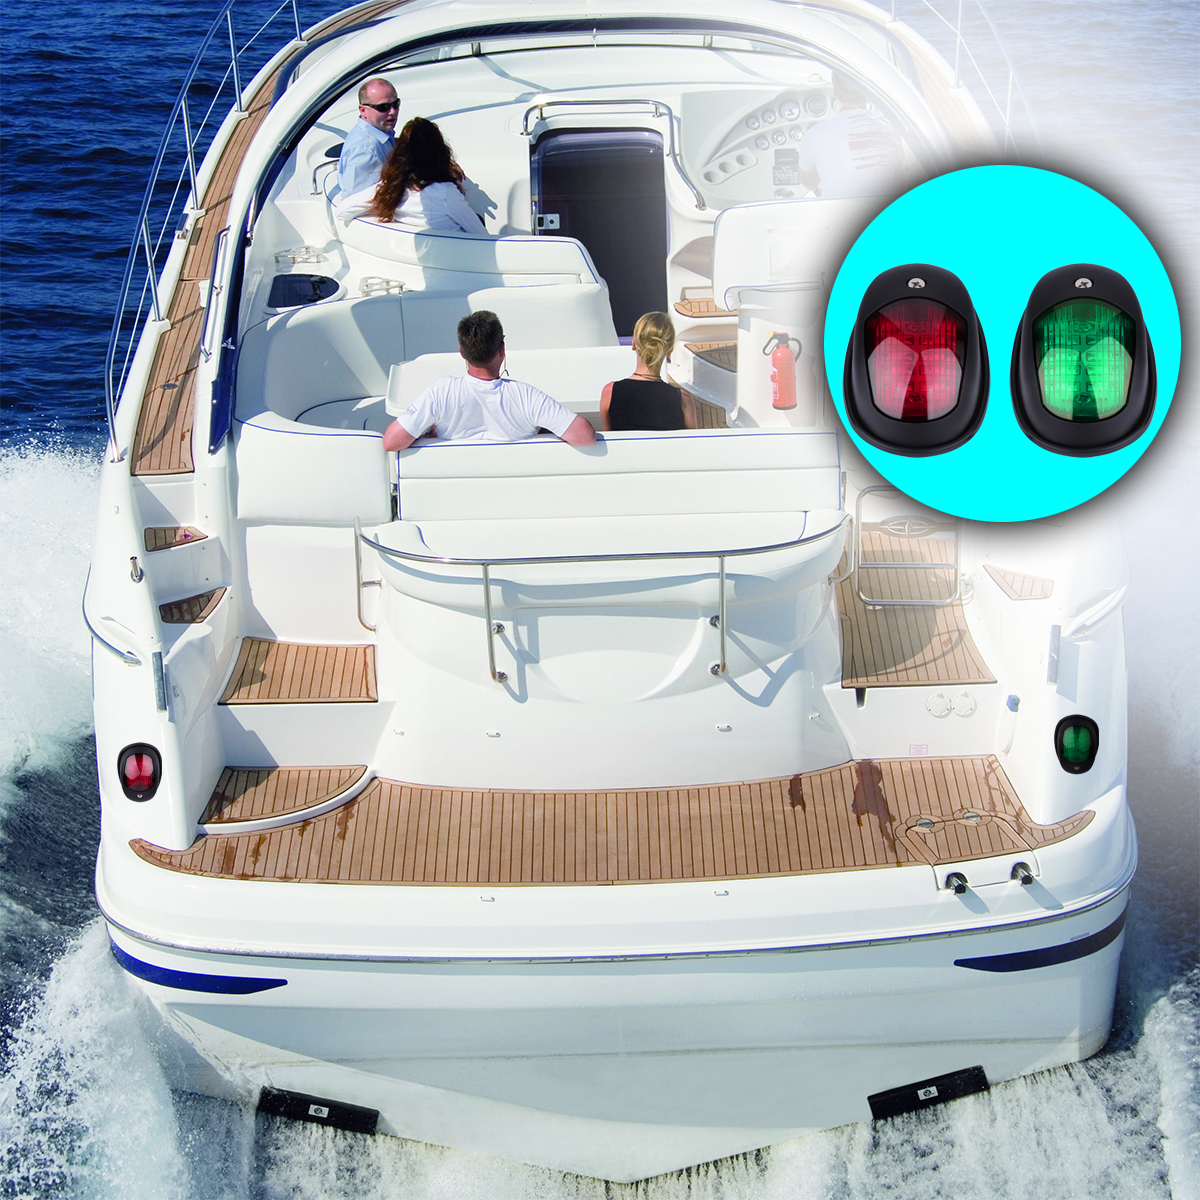 medium resolution of 1 pair of navigation lights green and red color red for port side and green for starboard side it can be use as bow light stern light or running light